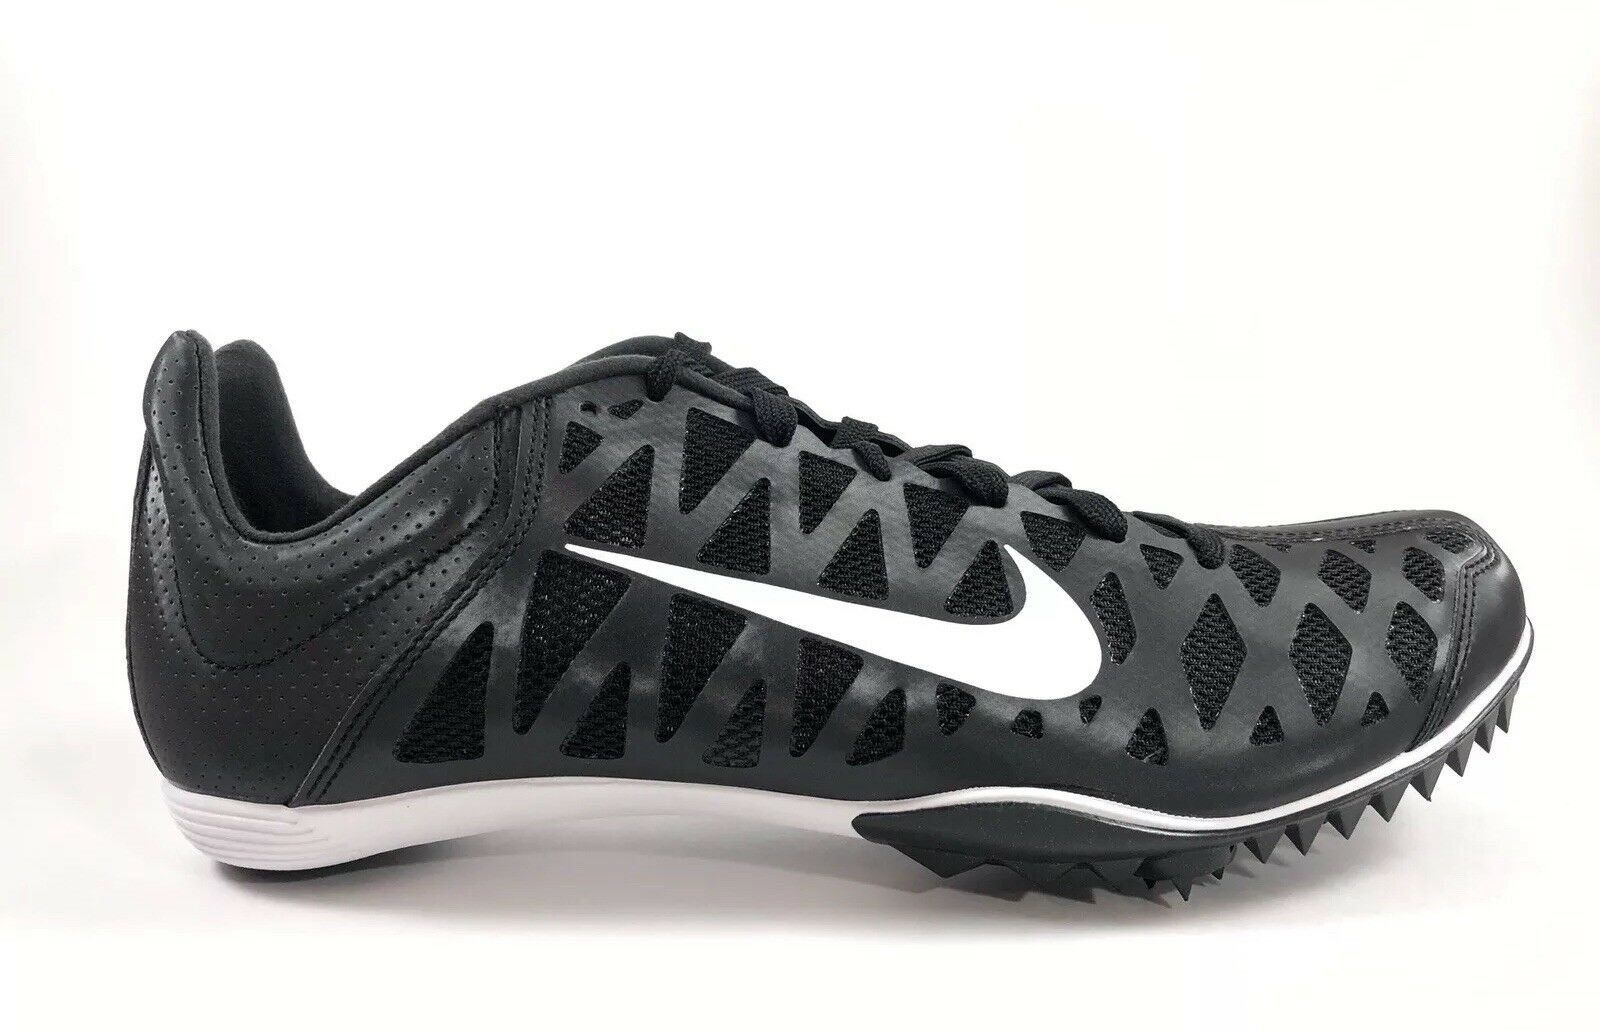 Nike Zoom Maxcat 4 Sprint Track Spikes Black 549150 017 Size  Mens 11